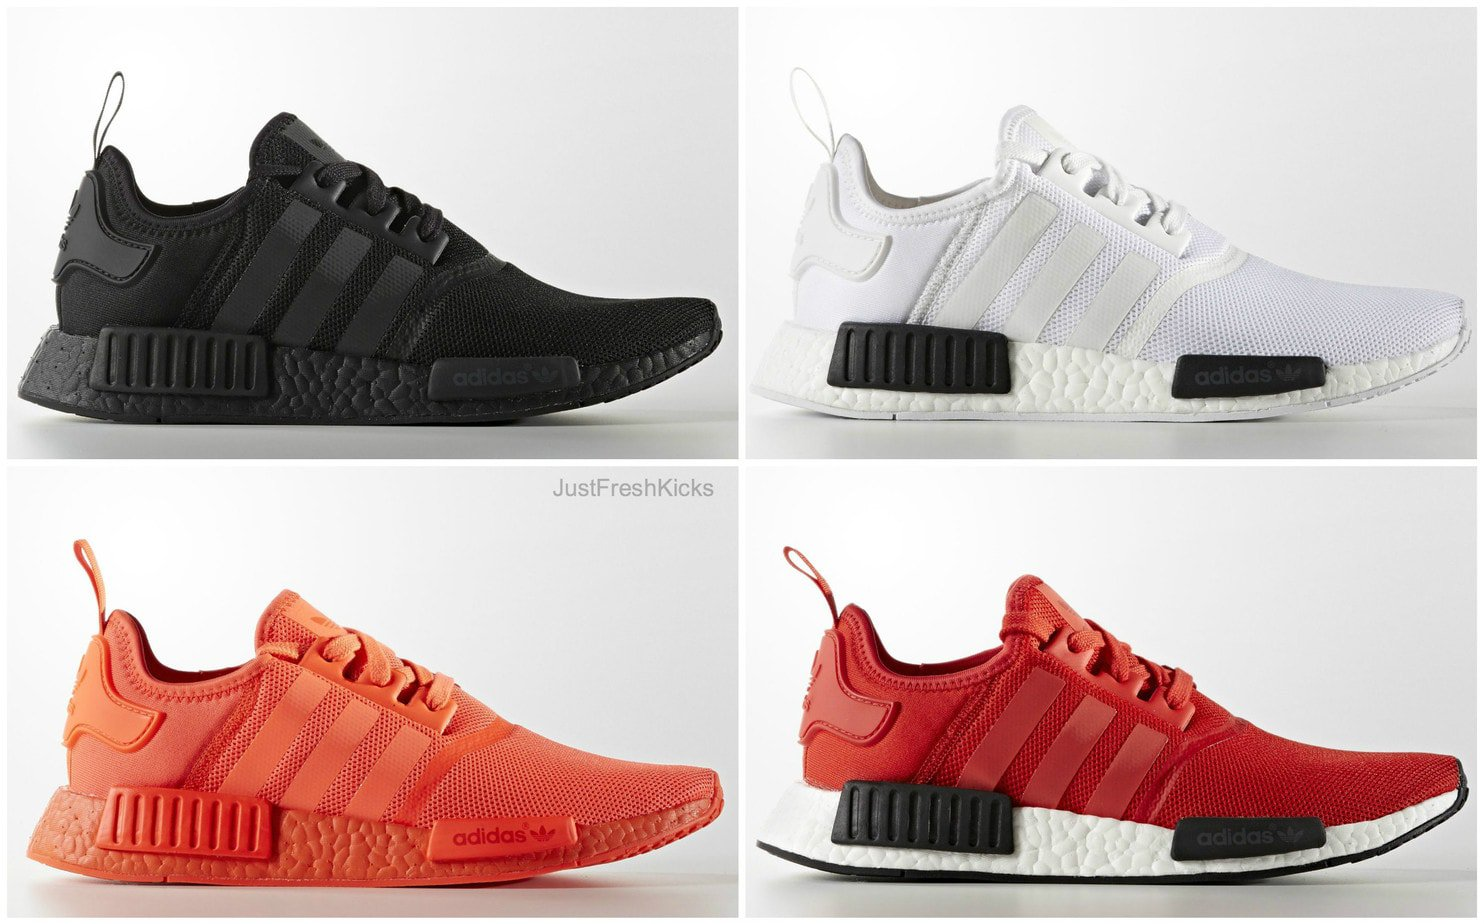 promo code 2520c 4cead Updated adidas NMD Release Dates - JustFreshKicks